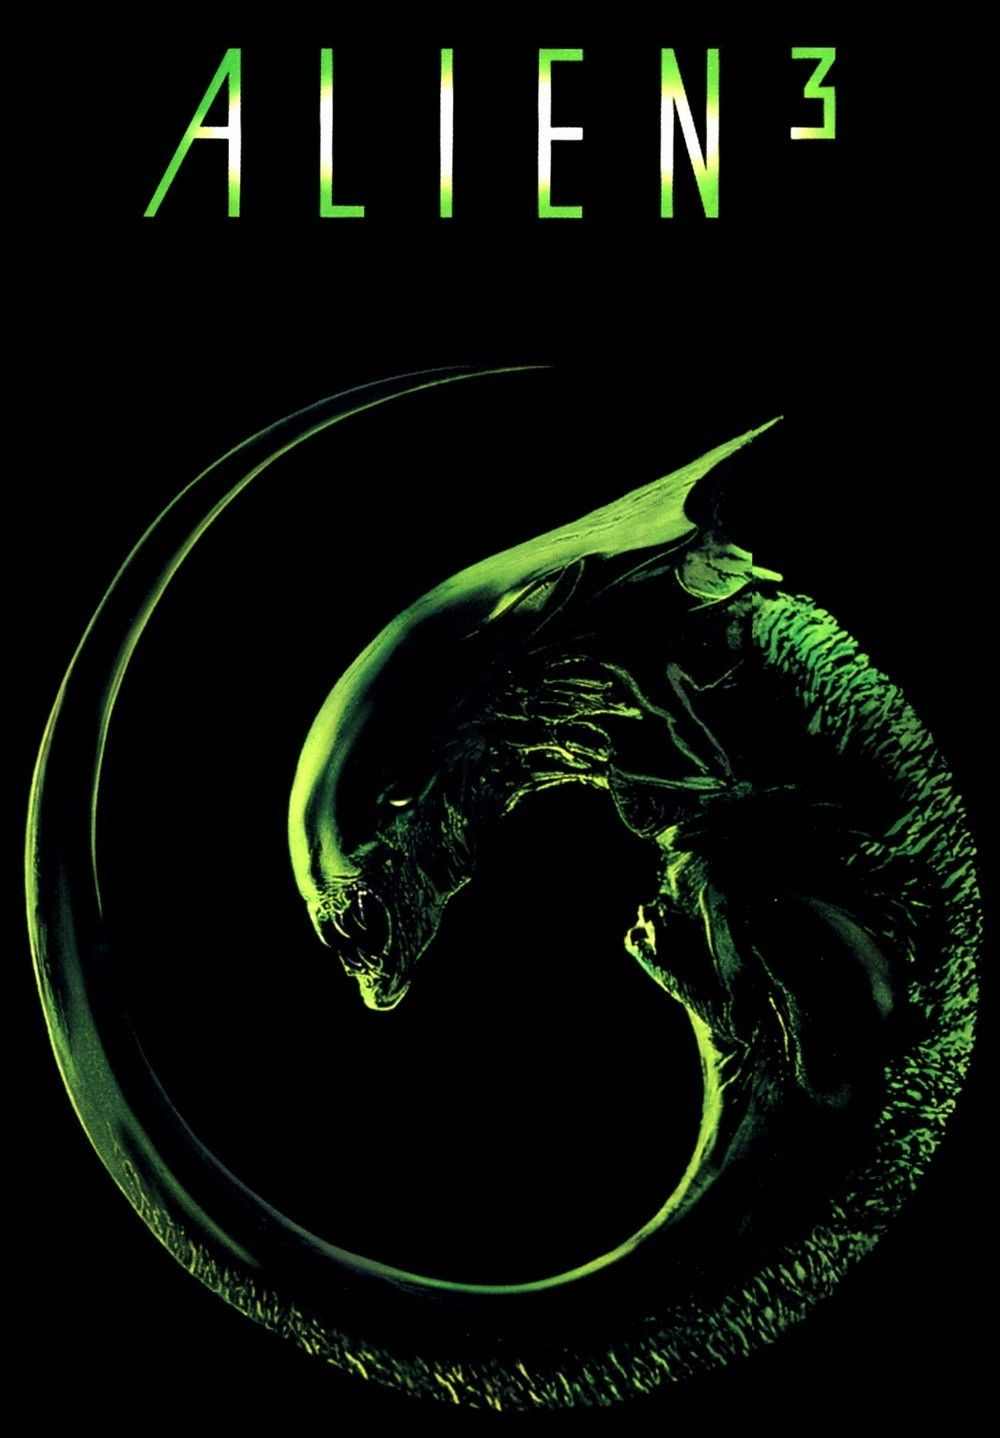 Alien 3 1992 Movie Review Aliens Movie Horror Movie Posters Movie Posters